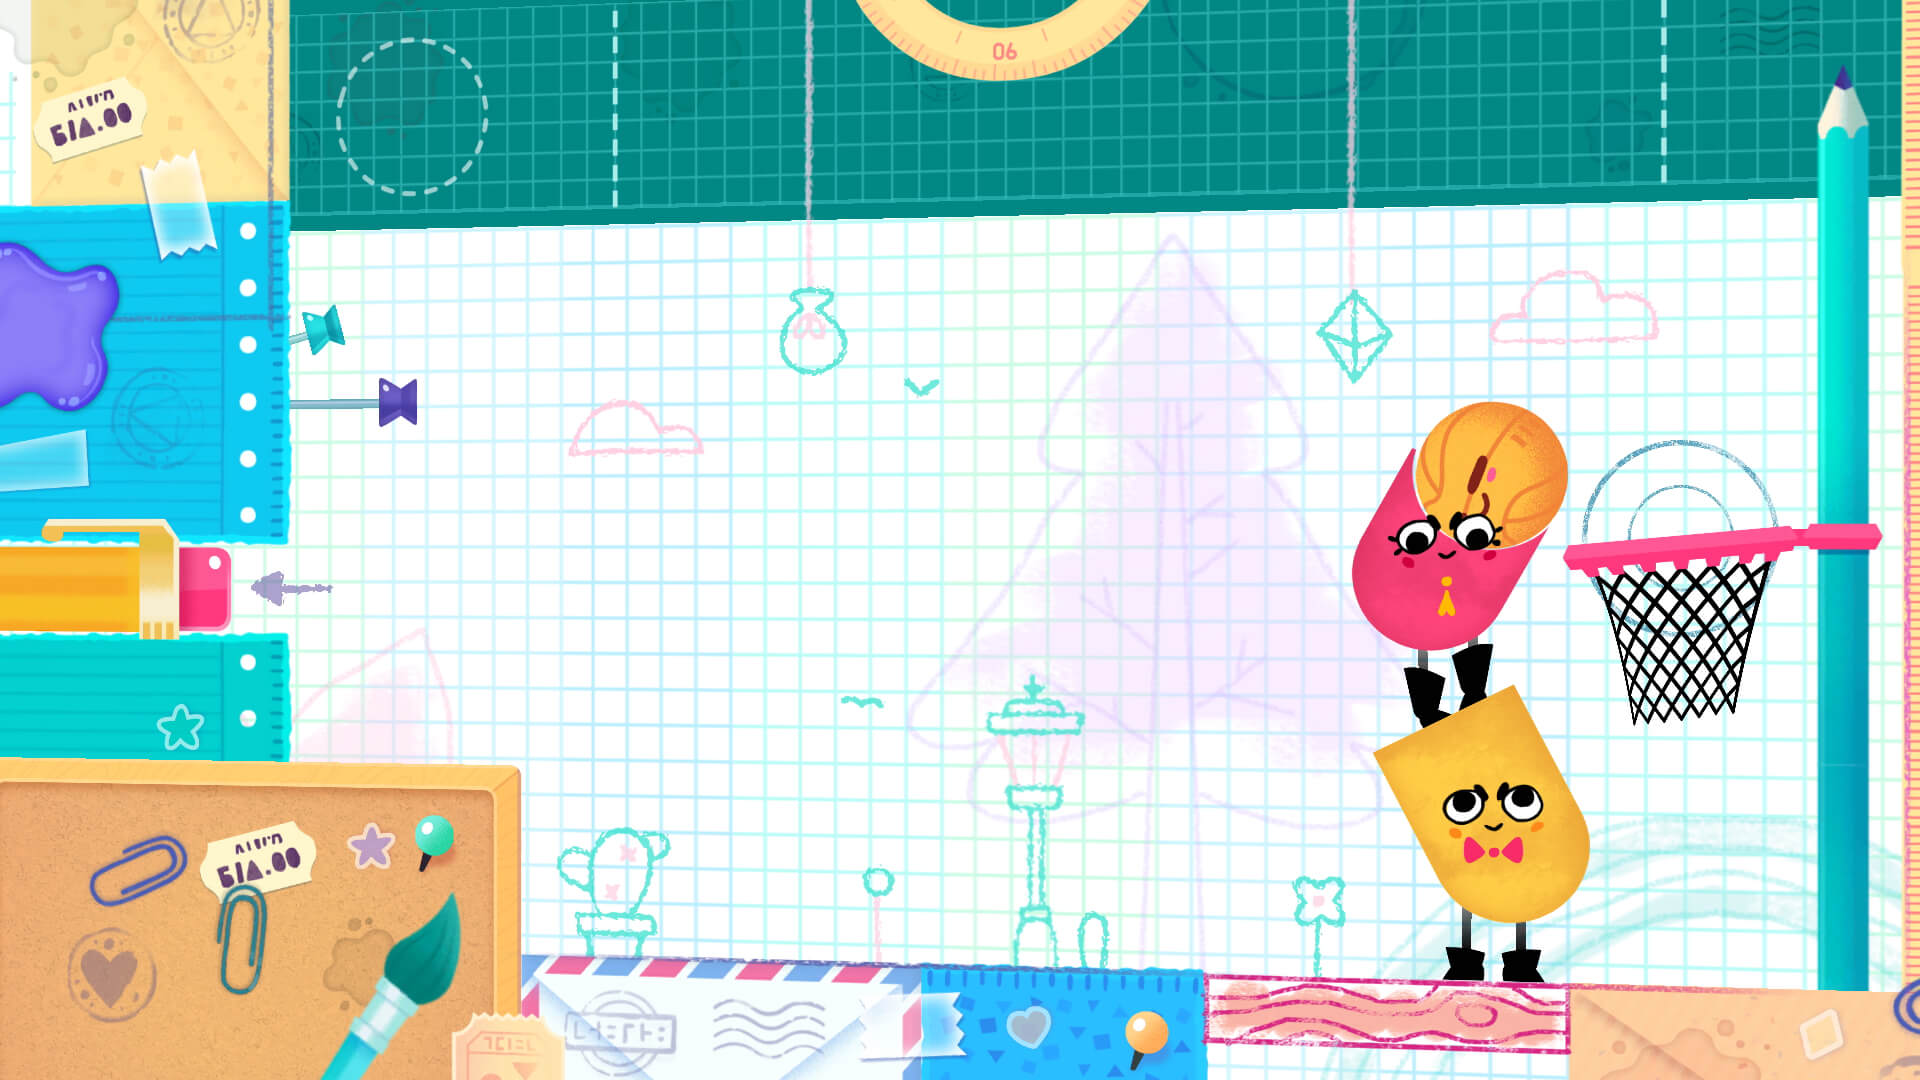 Snipperclips - Cut it out, together! is a new puzzle title for Nintendo Switch.